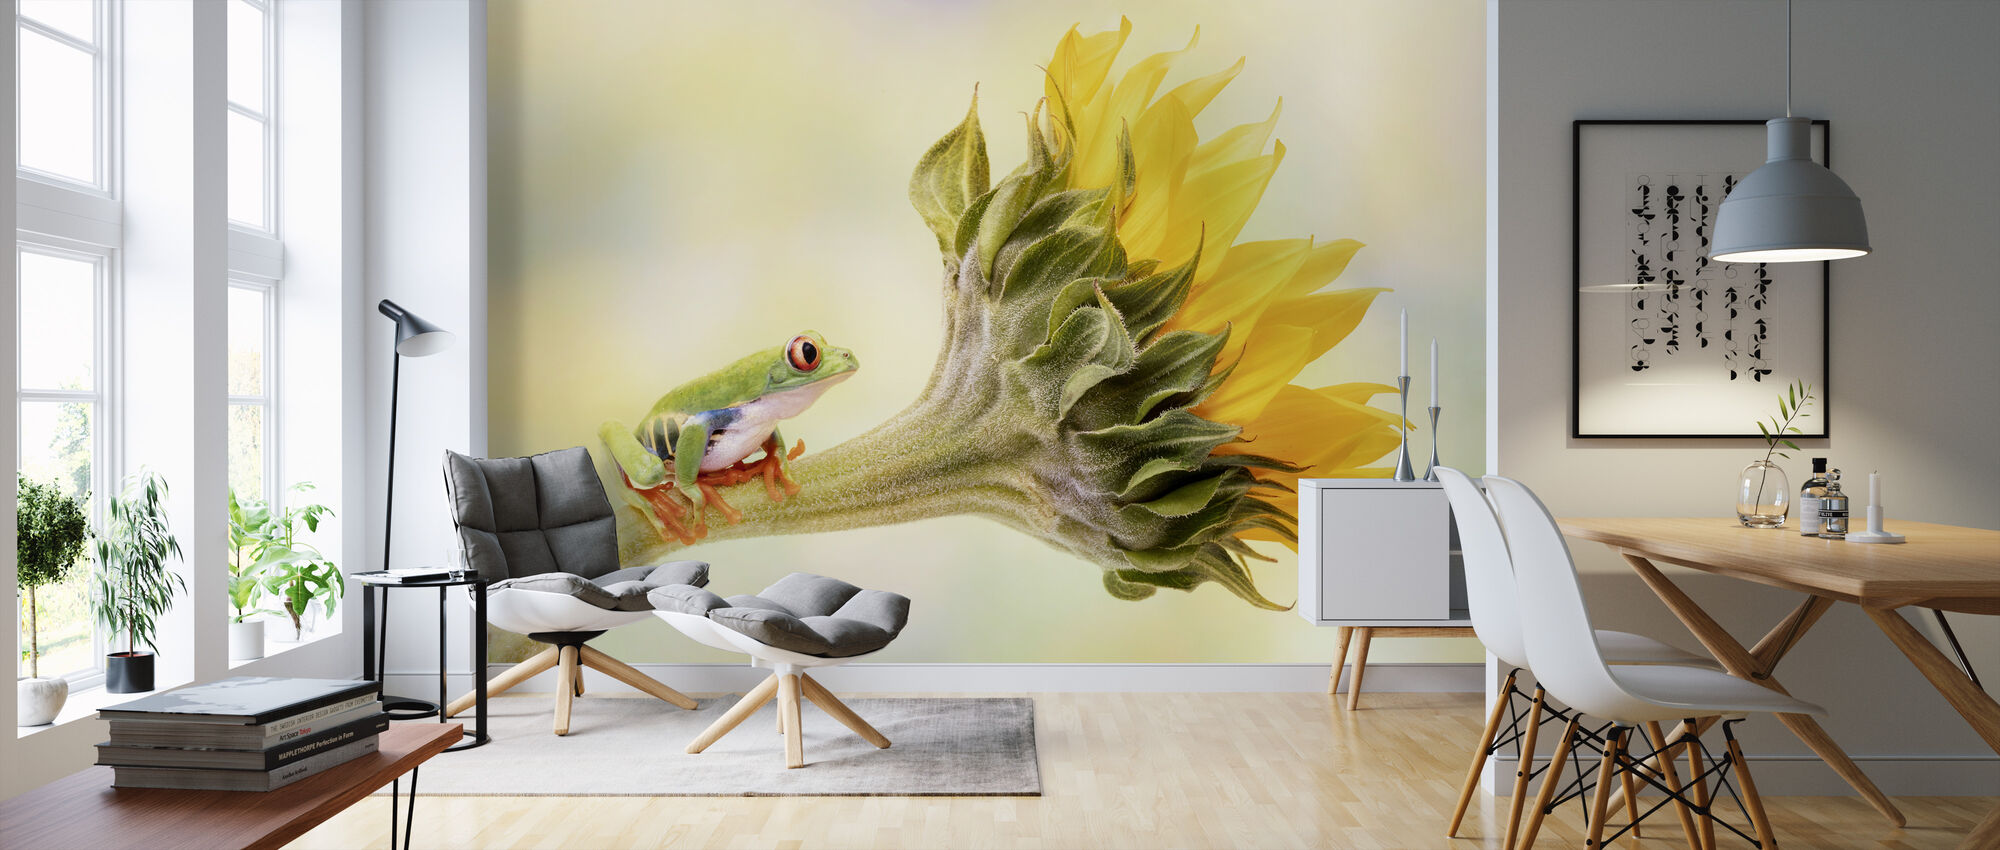 Tree Frog on a Sunflower - Wallpaper - Living Room